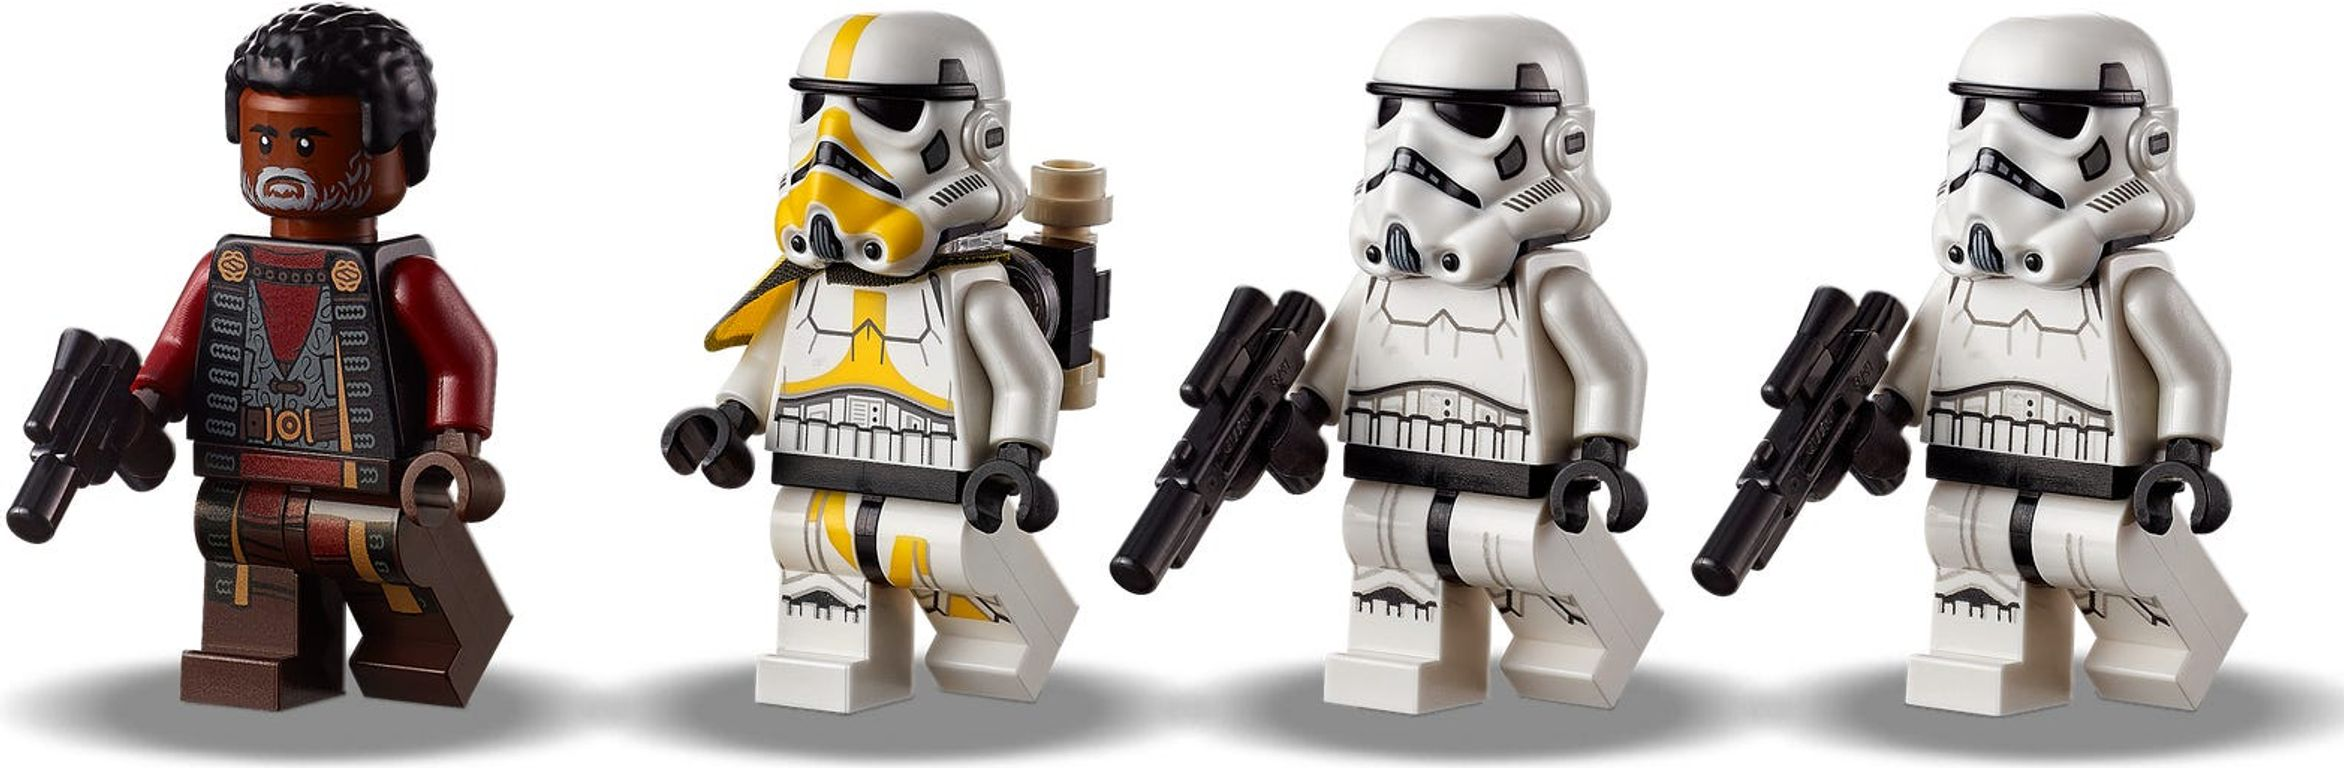 LEGO® Star Wars Imperial Armored Marauder minifigures